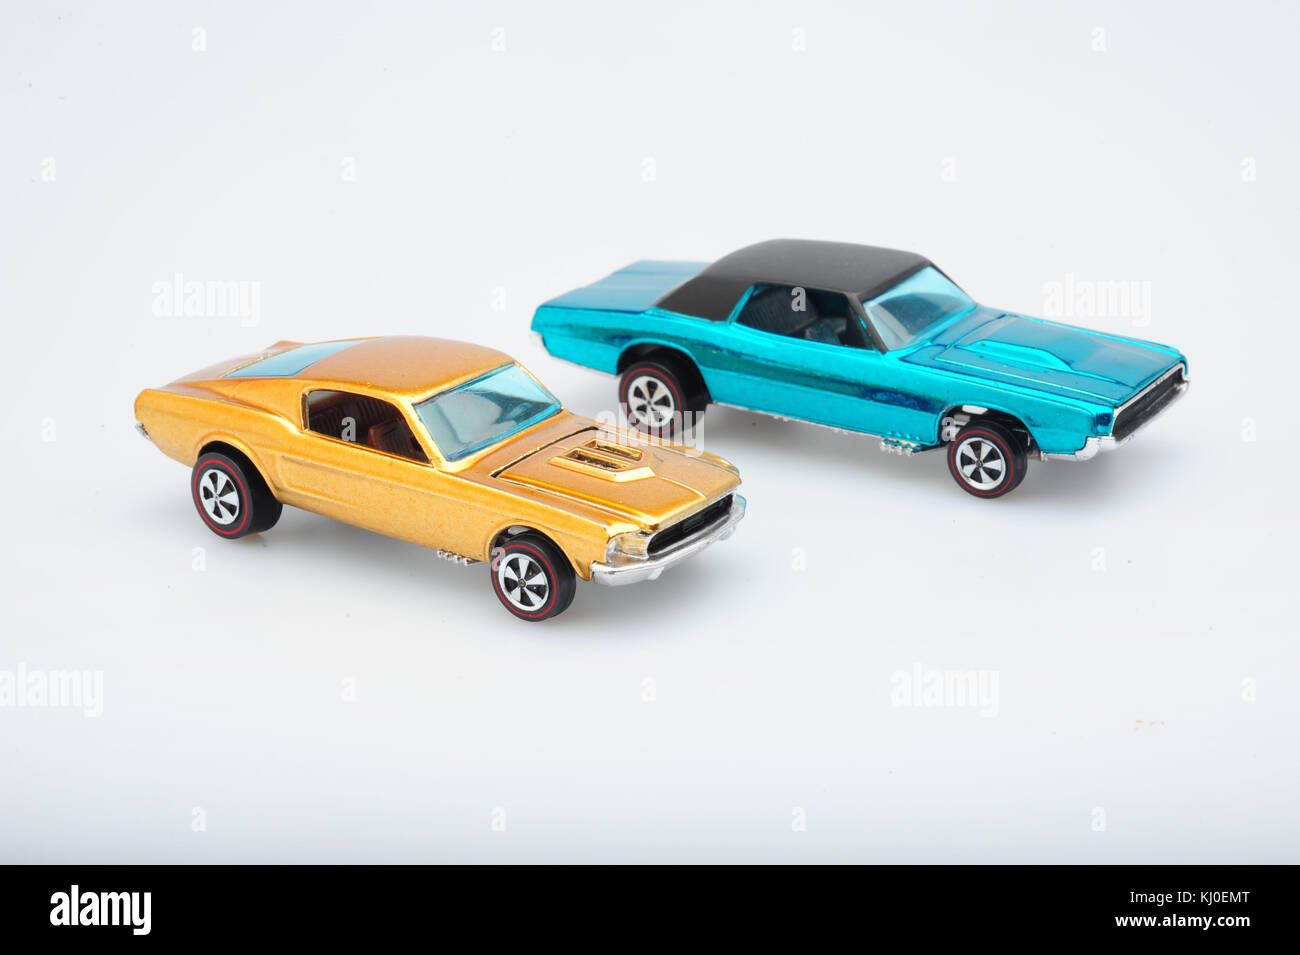 toys-classic-vintage-hot-wheels-cars-made-by-mattel-usa-miniature-KJ0EMT.jpg